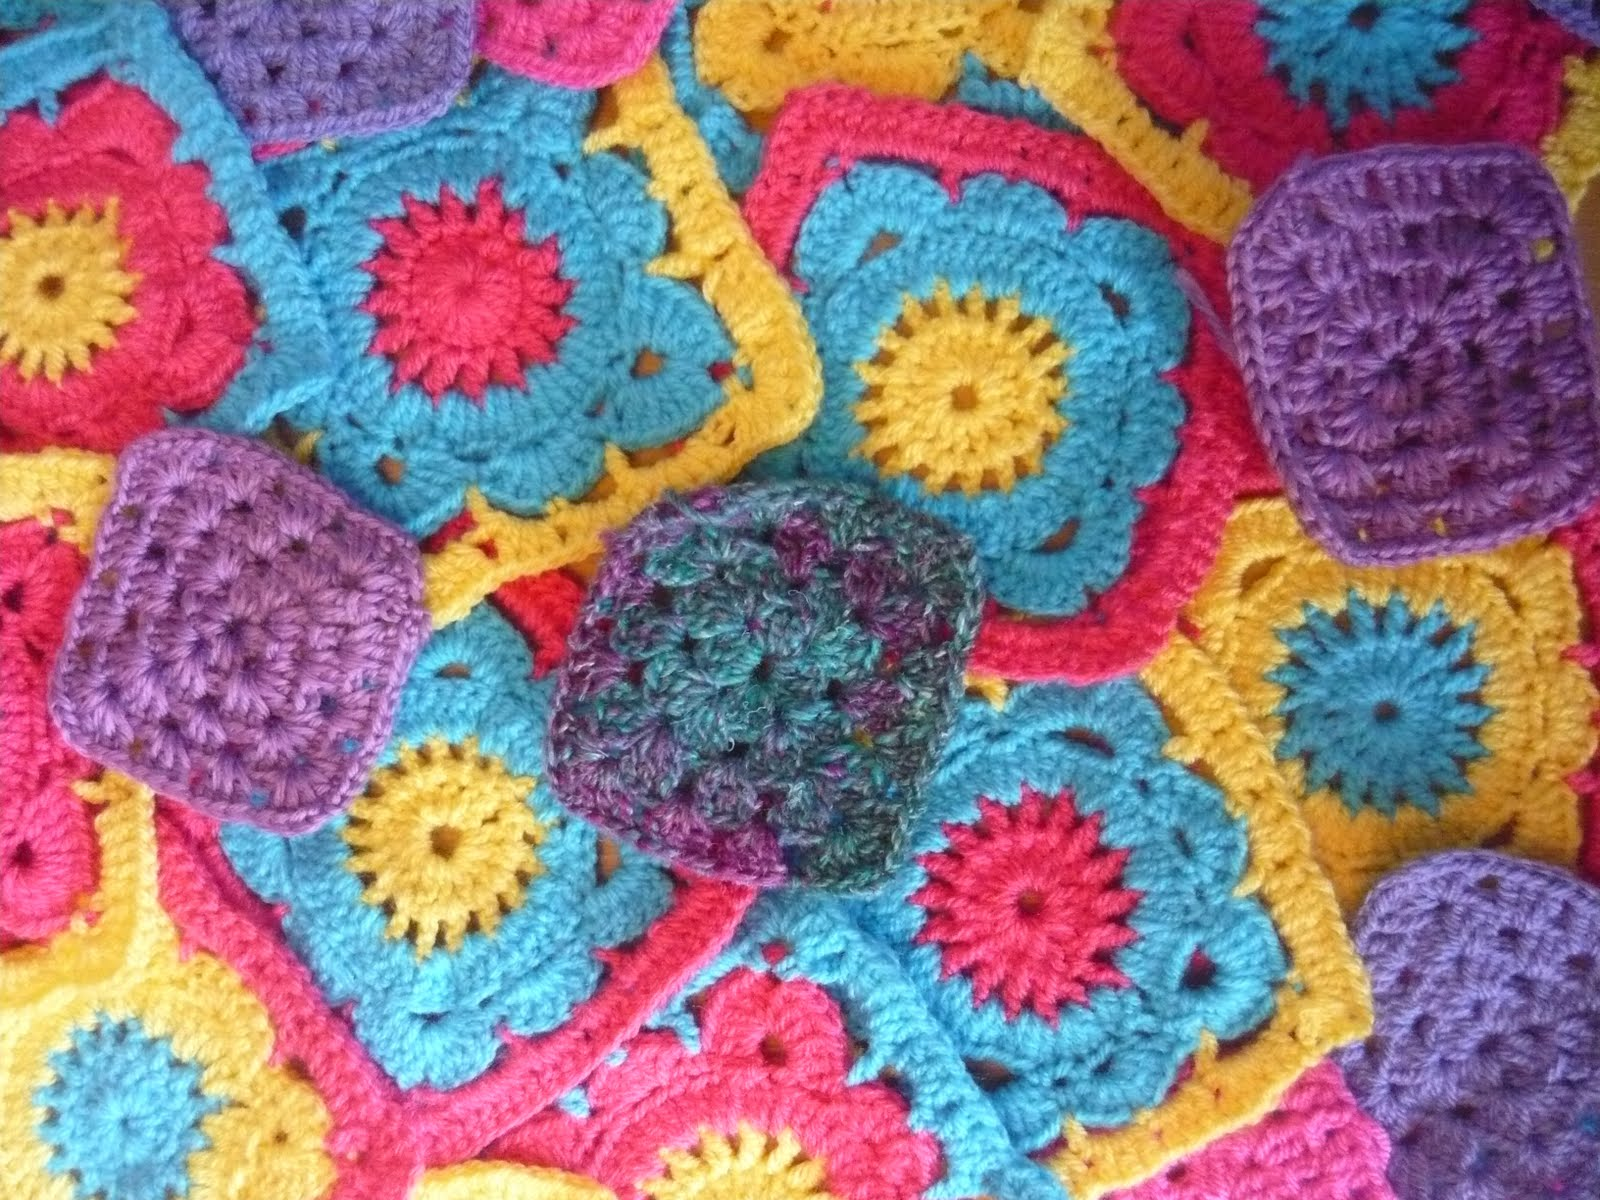 Crochet Granny Stitch : The Gingerbread Bunny: How to crochet a Granny Square!